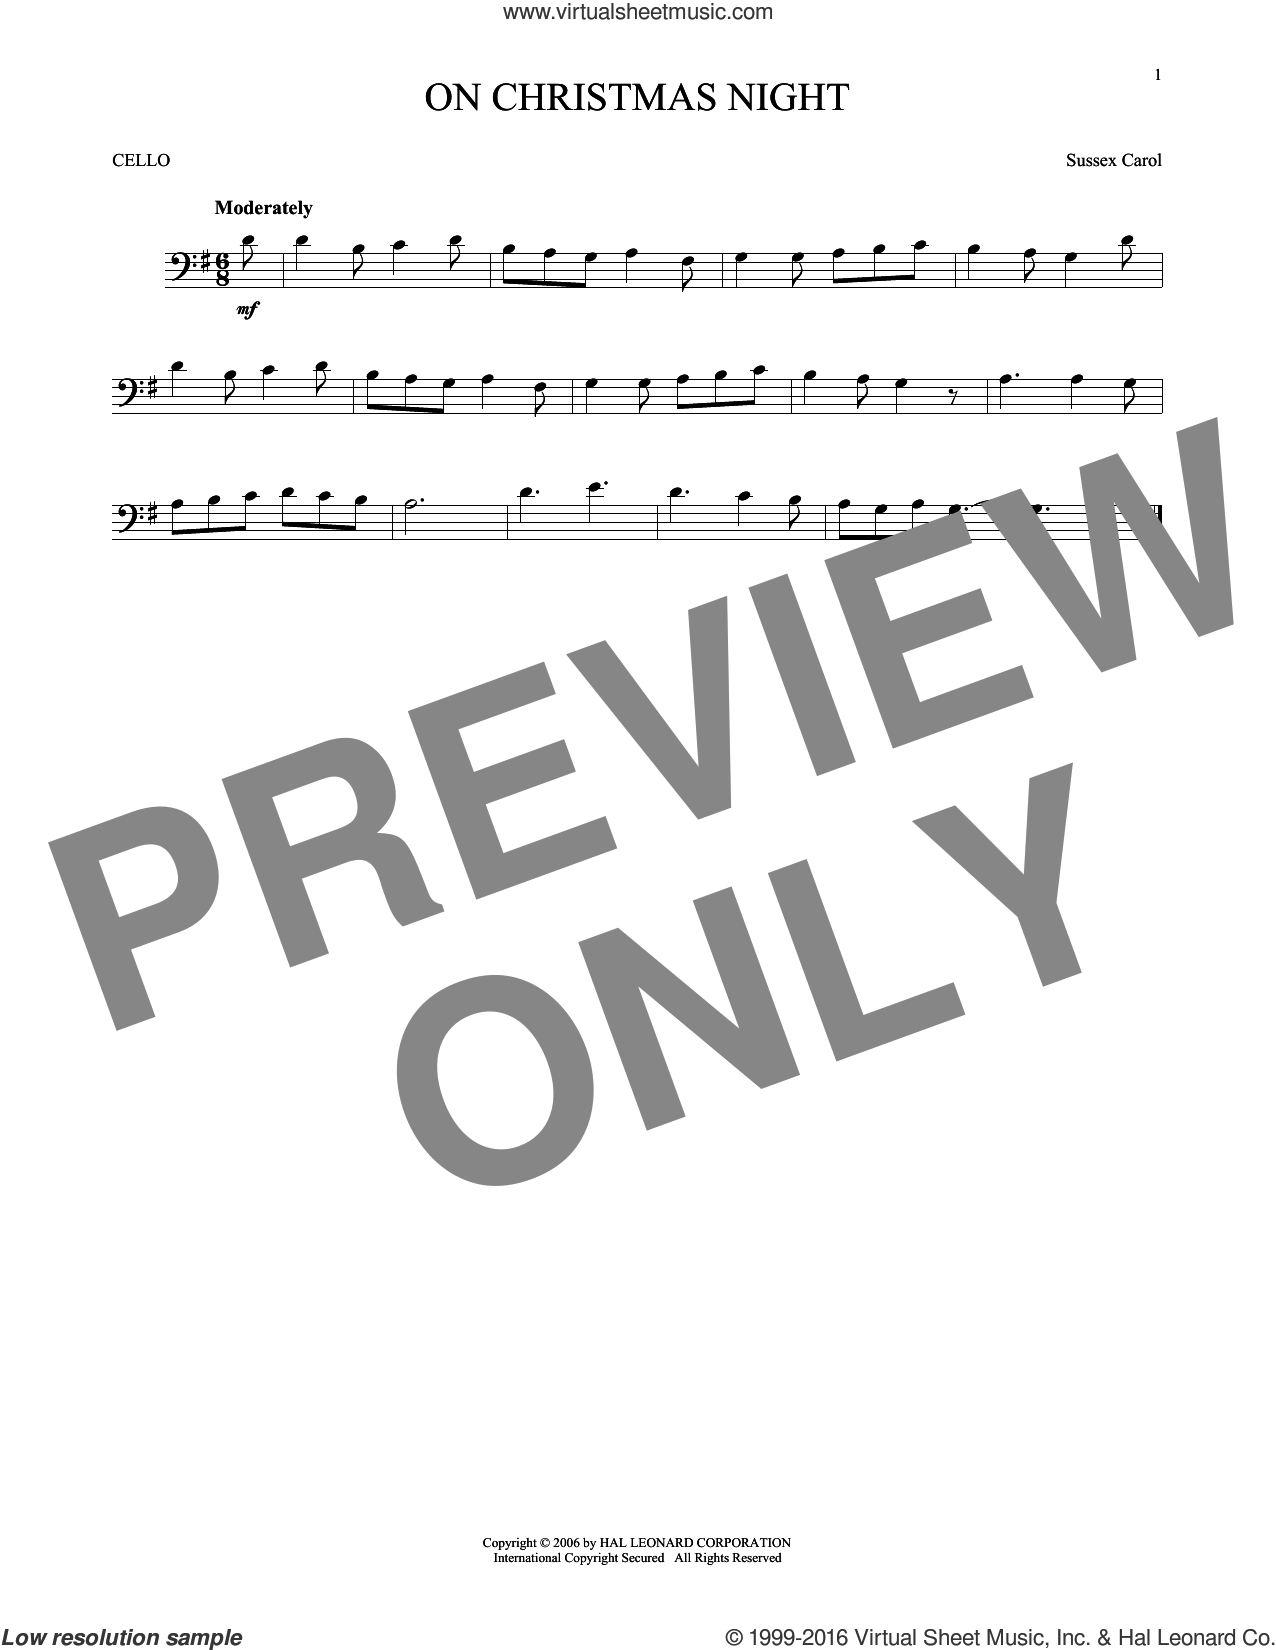 On Christmas Night sheet music for cello solo. Score Image Preview.